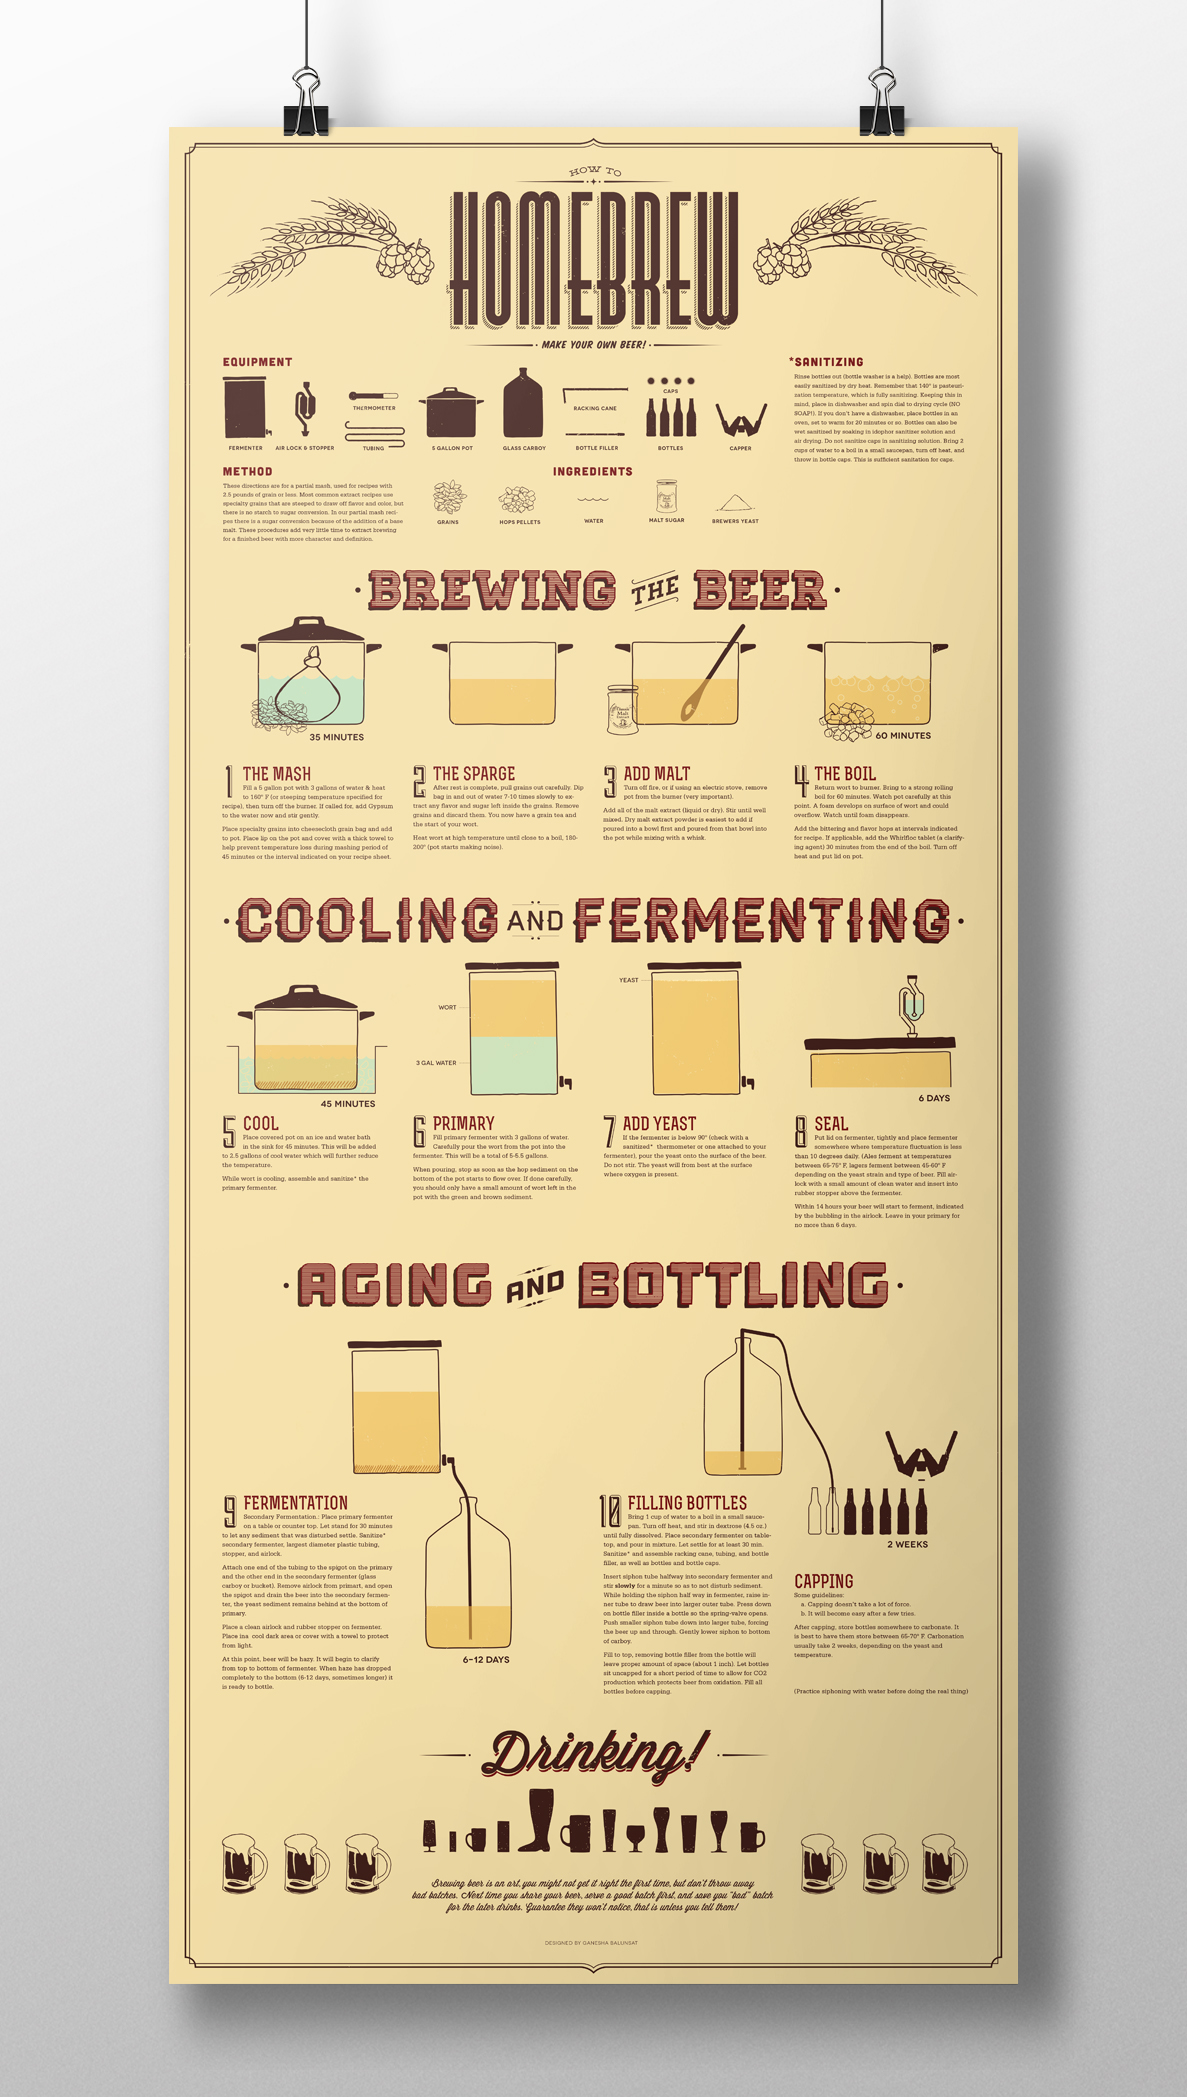 How to brew your own beer diagram poster on behance this diagram poster incorporates a vernacular visual language that would speak to people interested in homebrewing beer i implement a mix of typefaces for pooptronica